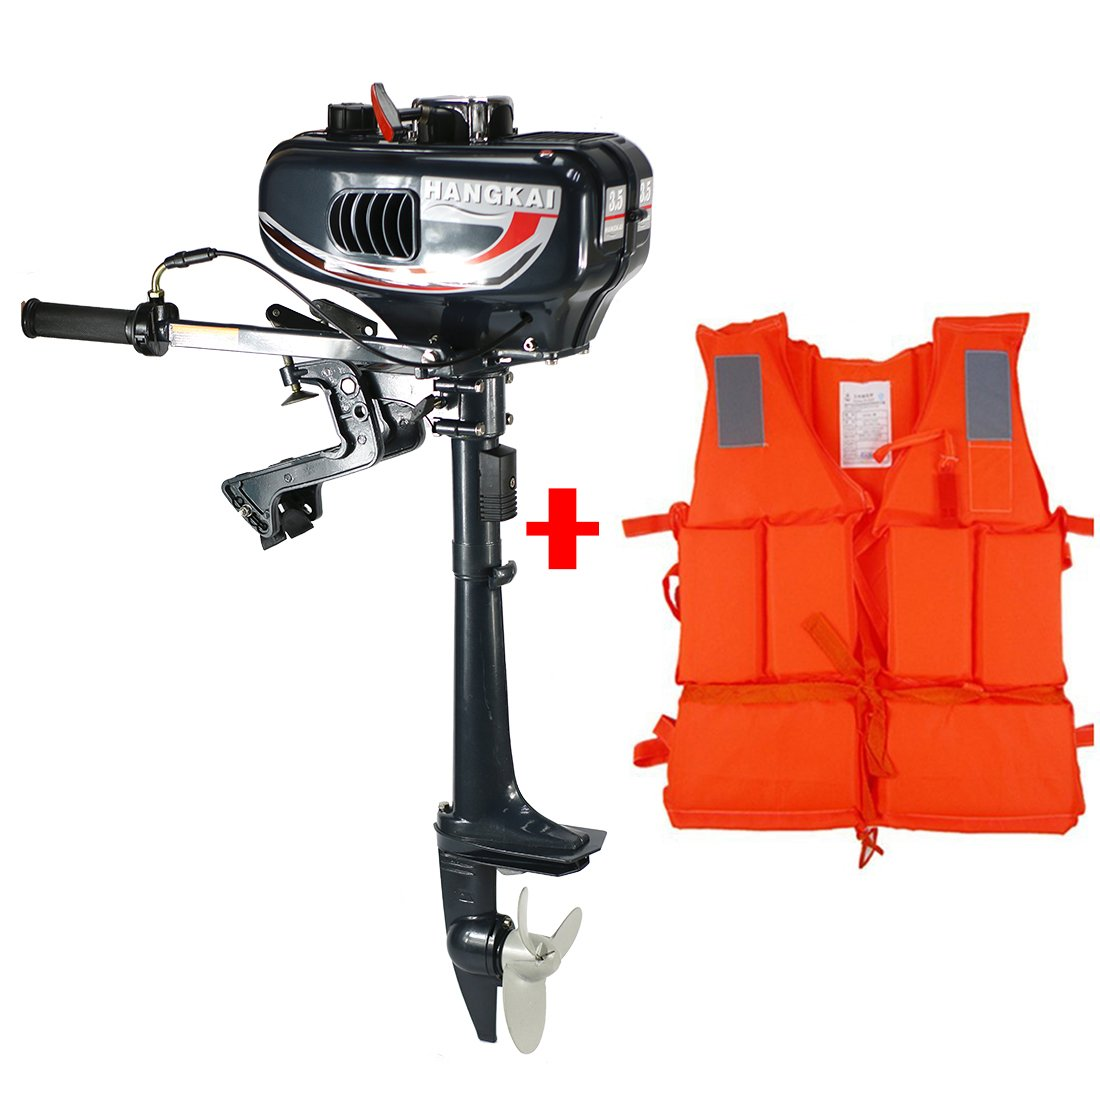 Yaufey 3.5hp Outboard Motor 2 Stroke Inflatable Fishing Boat Engine with Water Cooling System for Inflatable Boats, Fishing Boats, Sailboats, and Small Yachts & Motor+Life Vest.